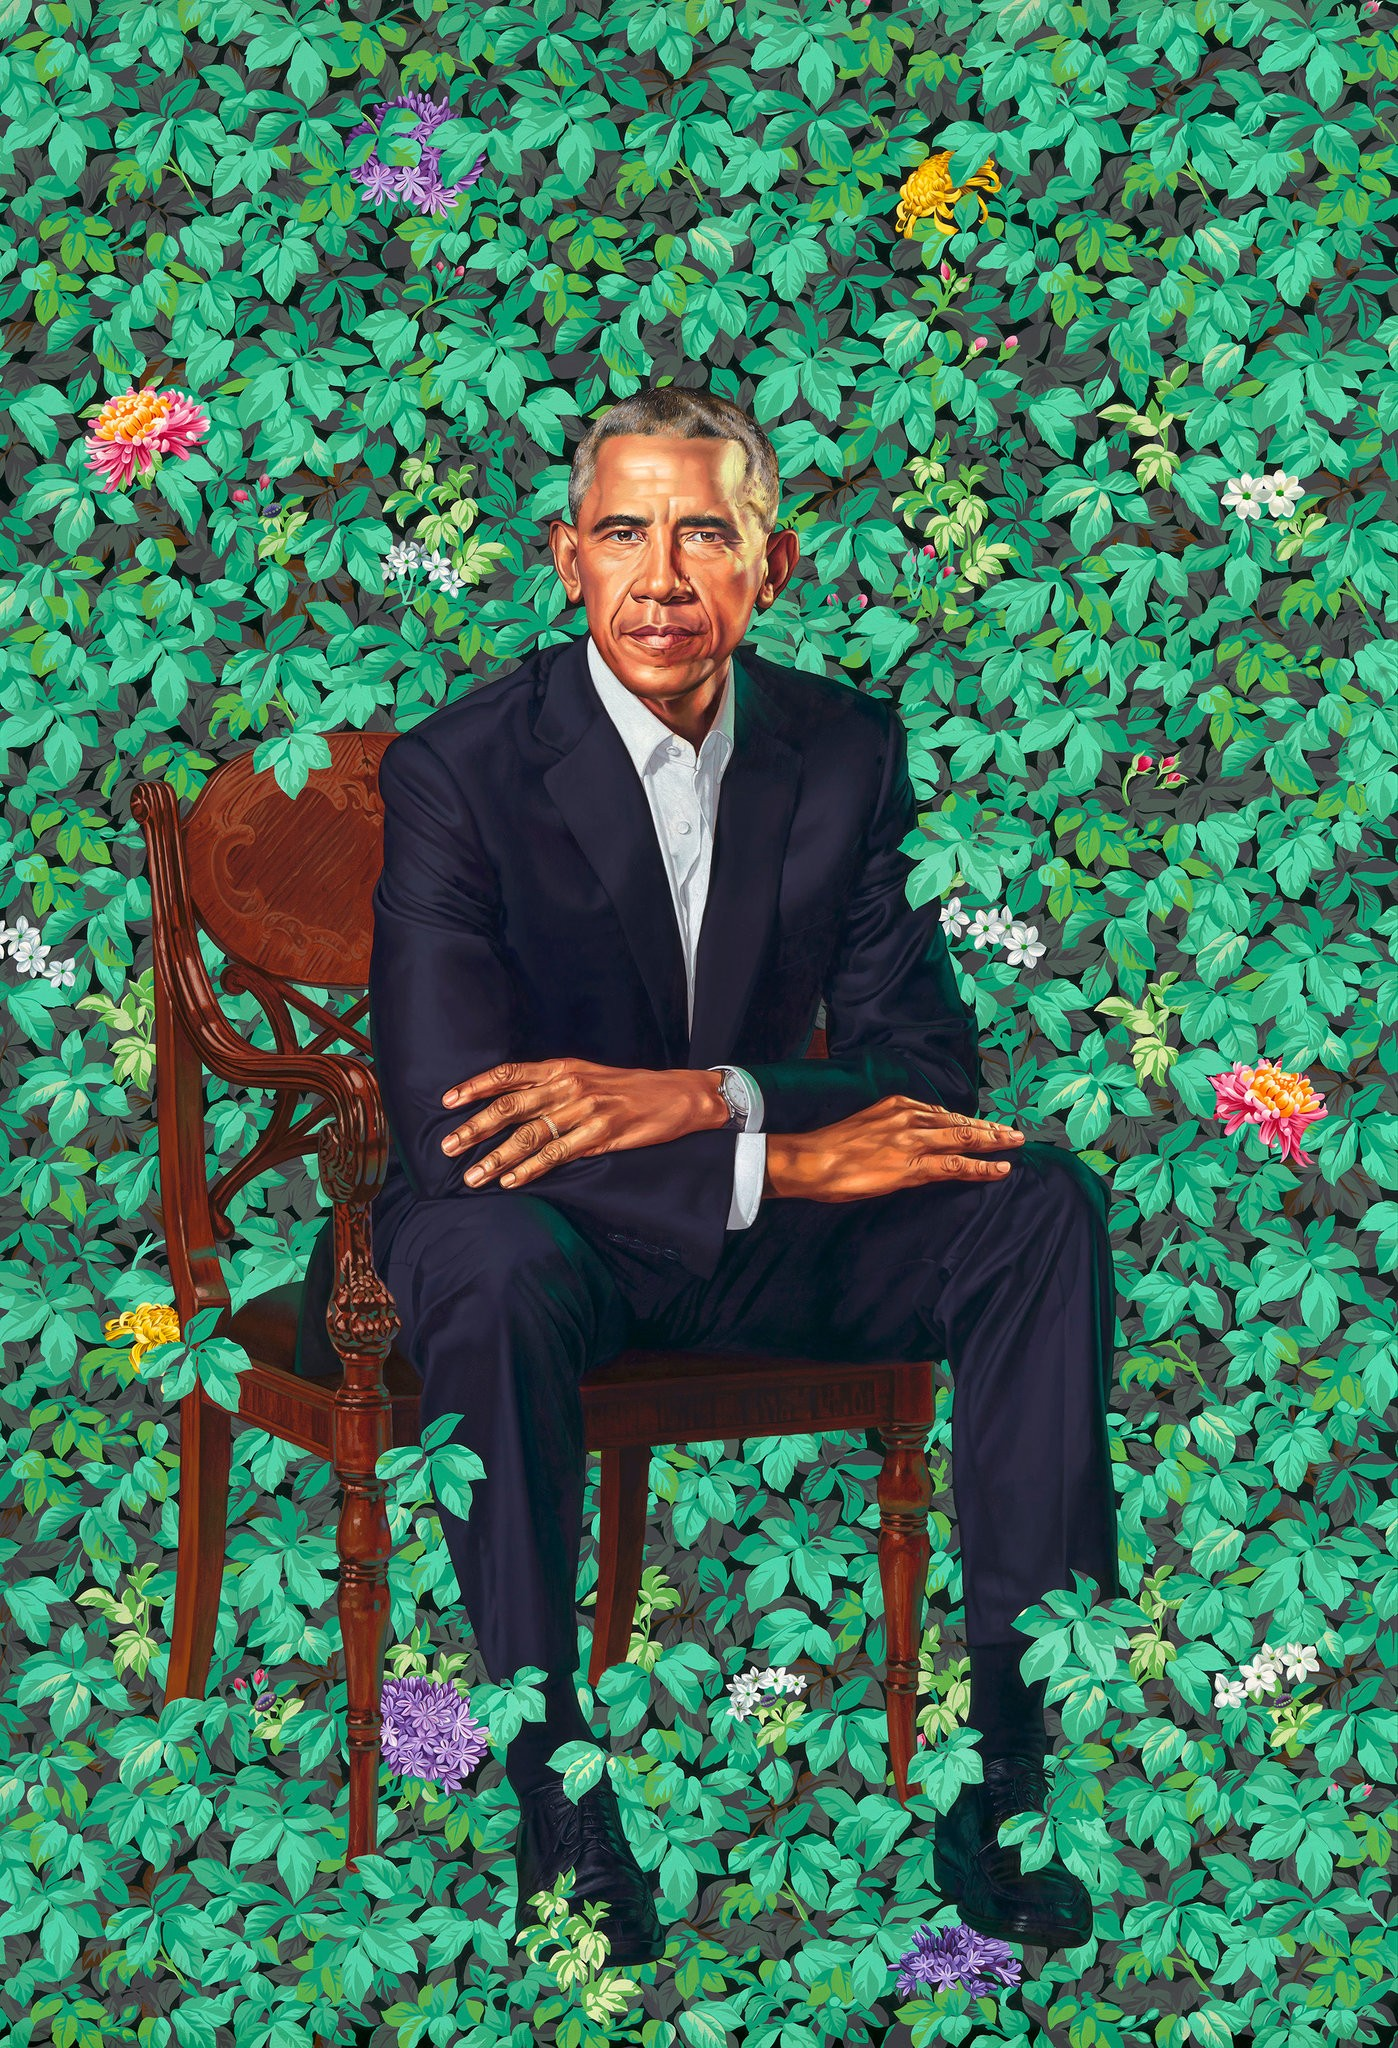 Obama Kehinde wiley.jpg